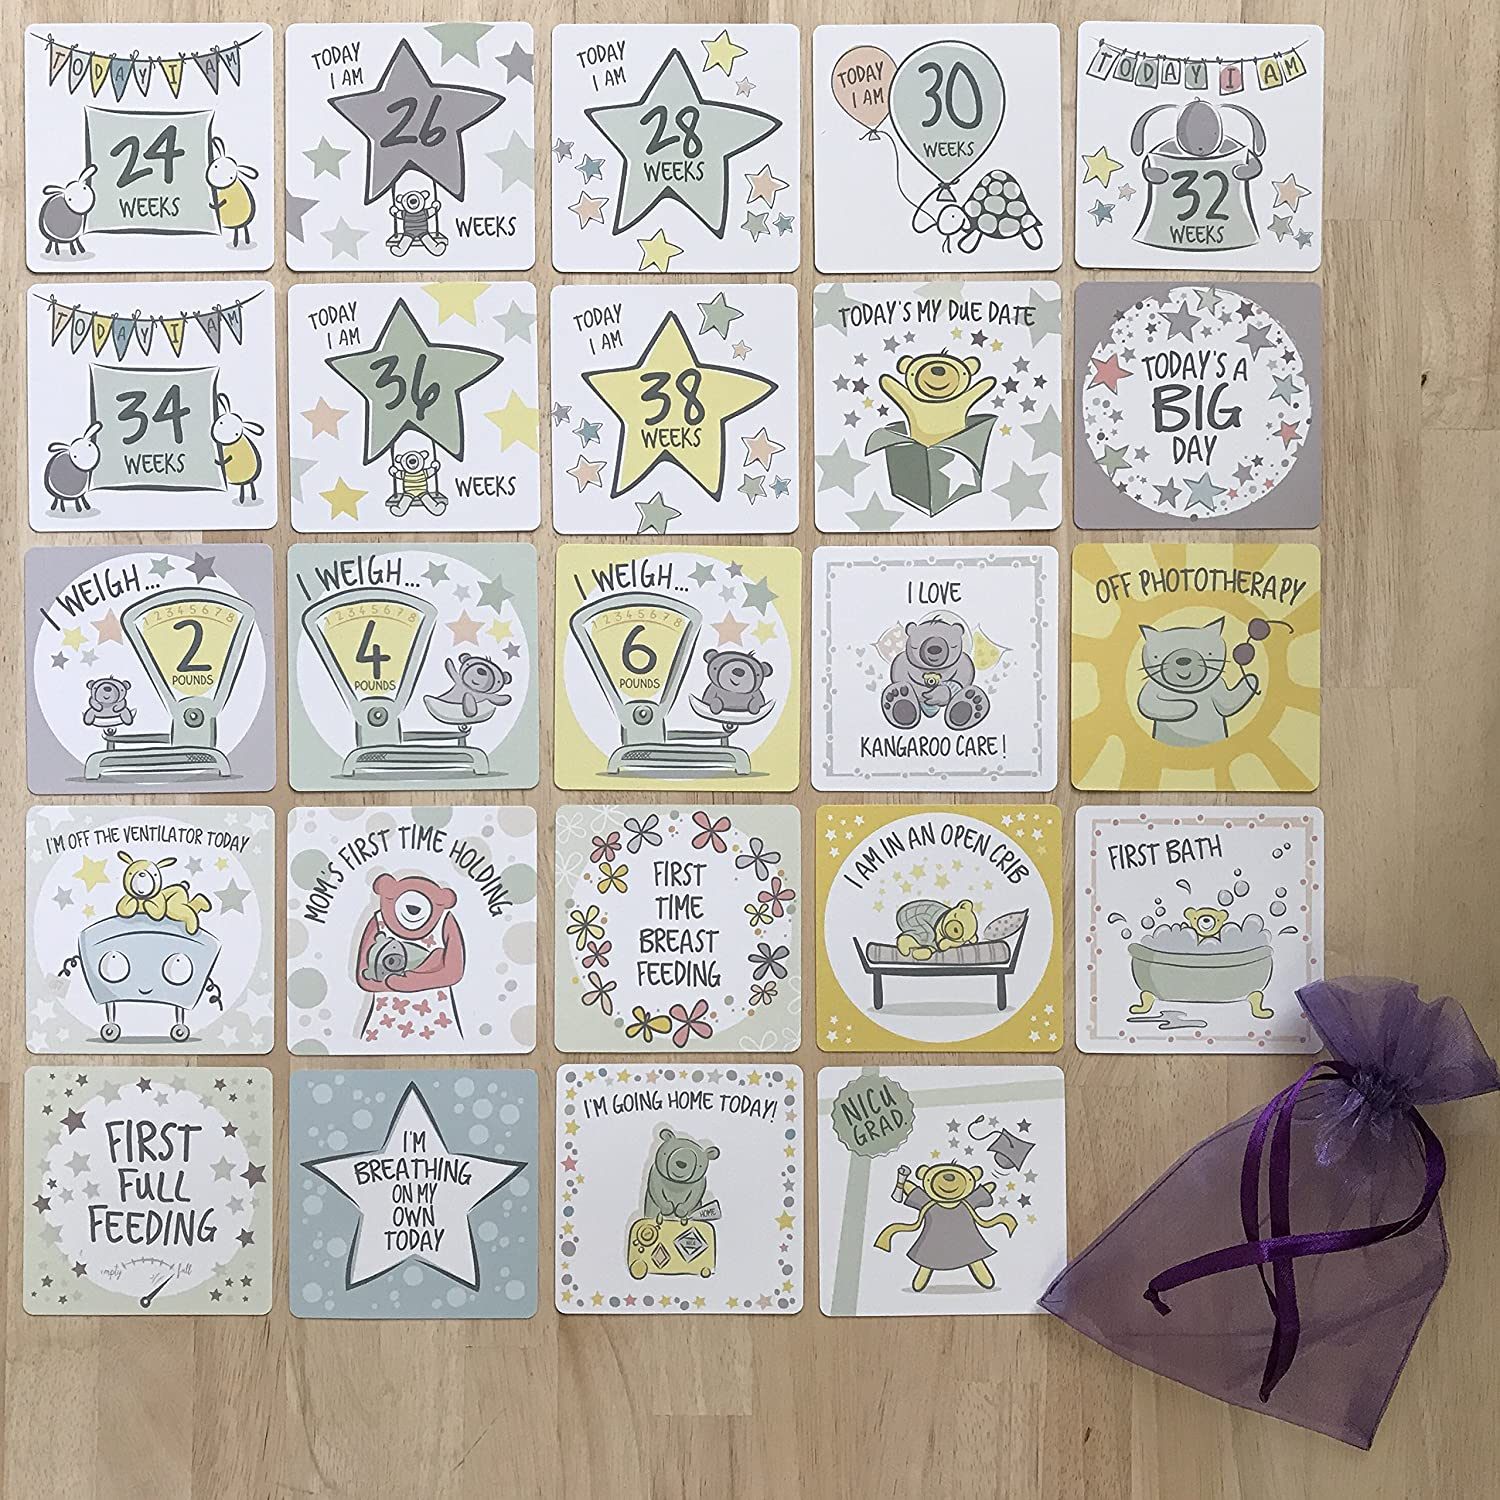 Celebrate The Special Moments in The Neonatal Intensive Care Unit NICU Milestone Cards from Every Tiny Thing